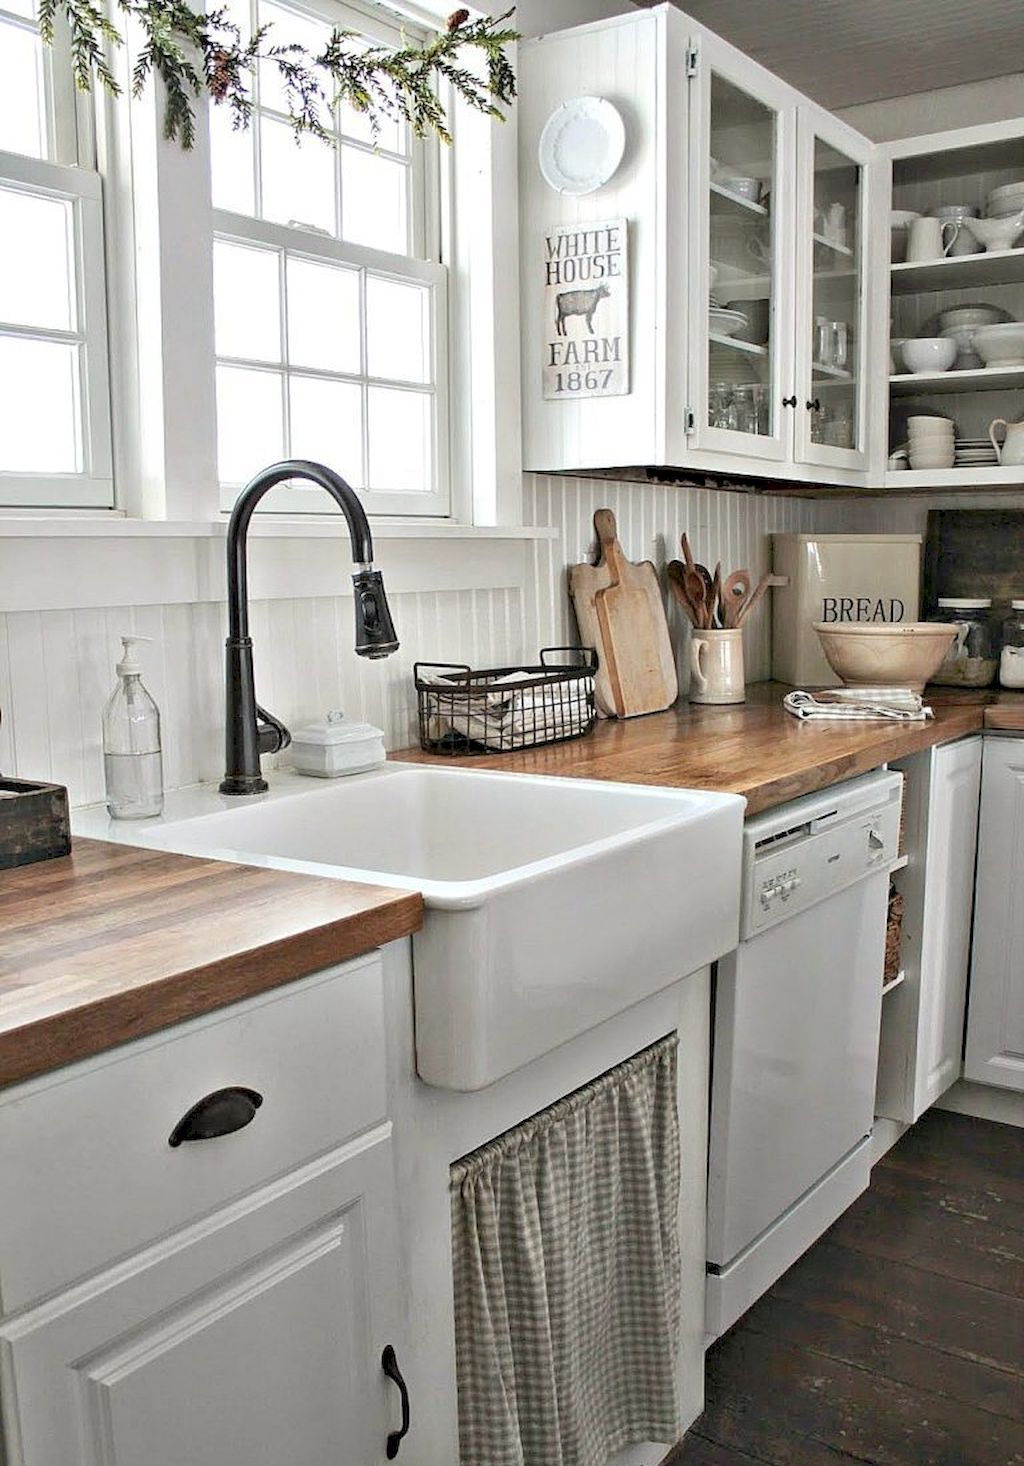 90 Rustic Kitchen Cabinets Farmhouse Style Ideas With Images Farmhouse Kitchen Cabinets